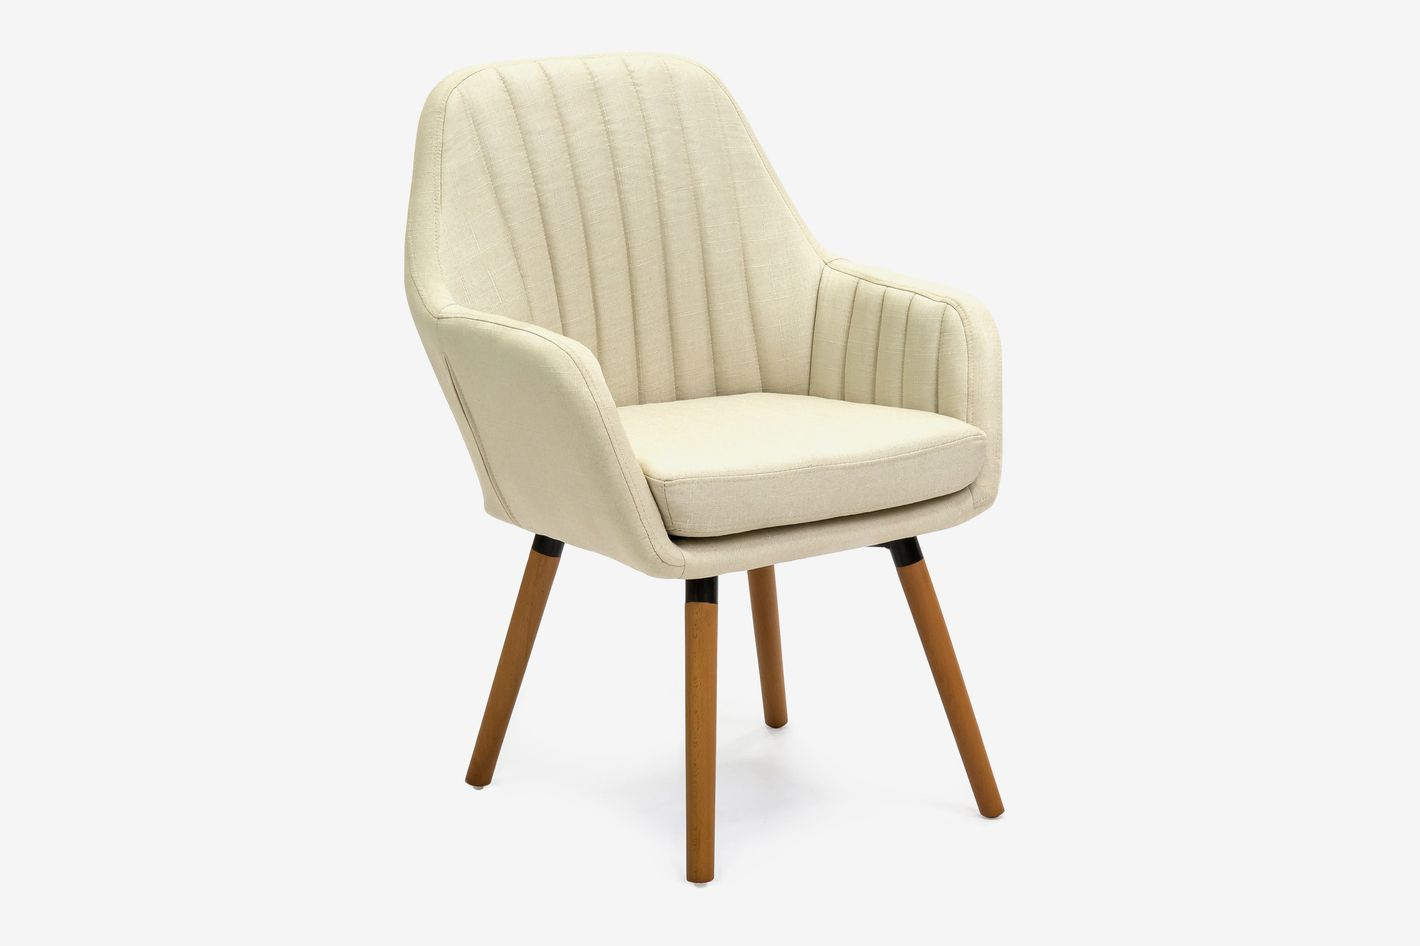 Accent Chairs At Walmart On Sale 2018